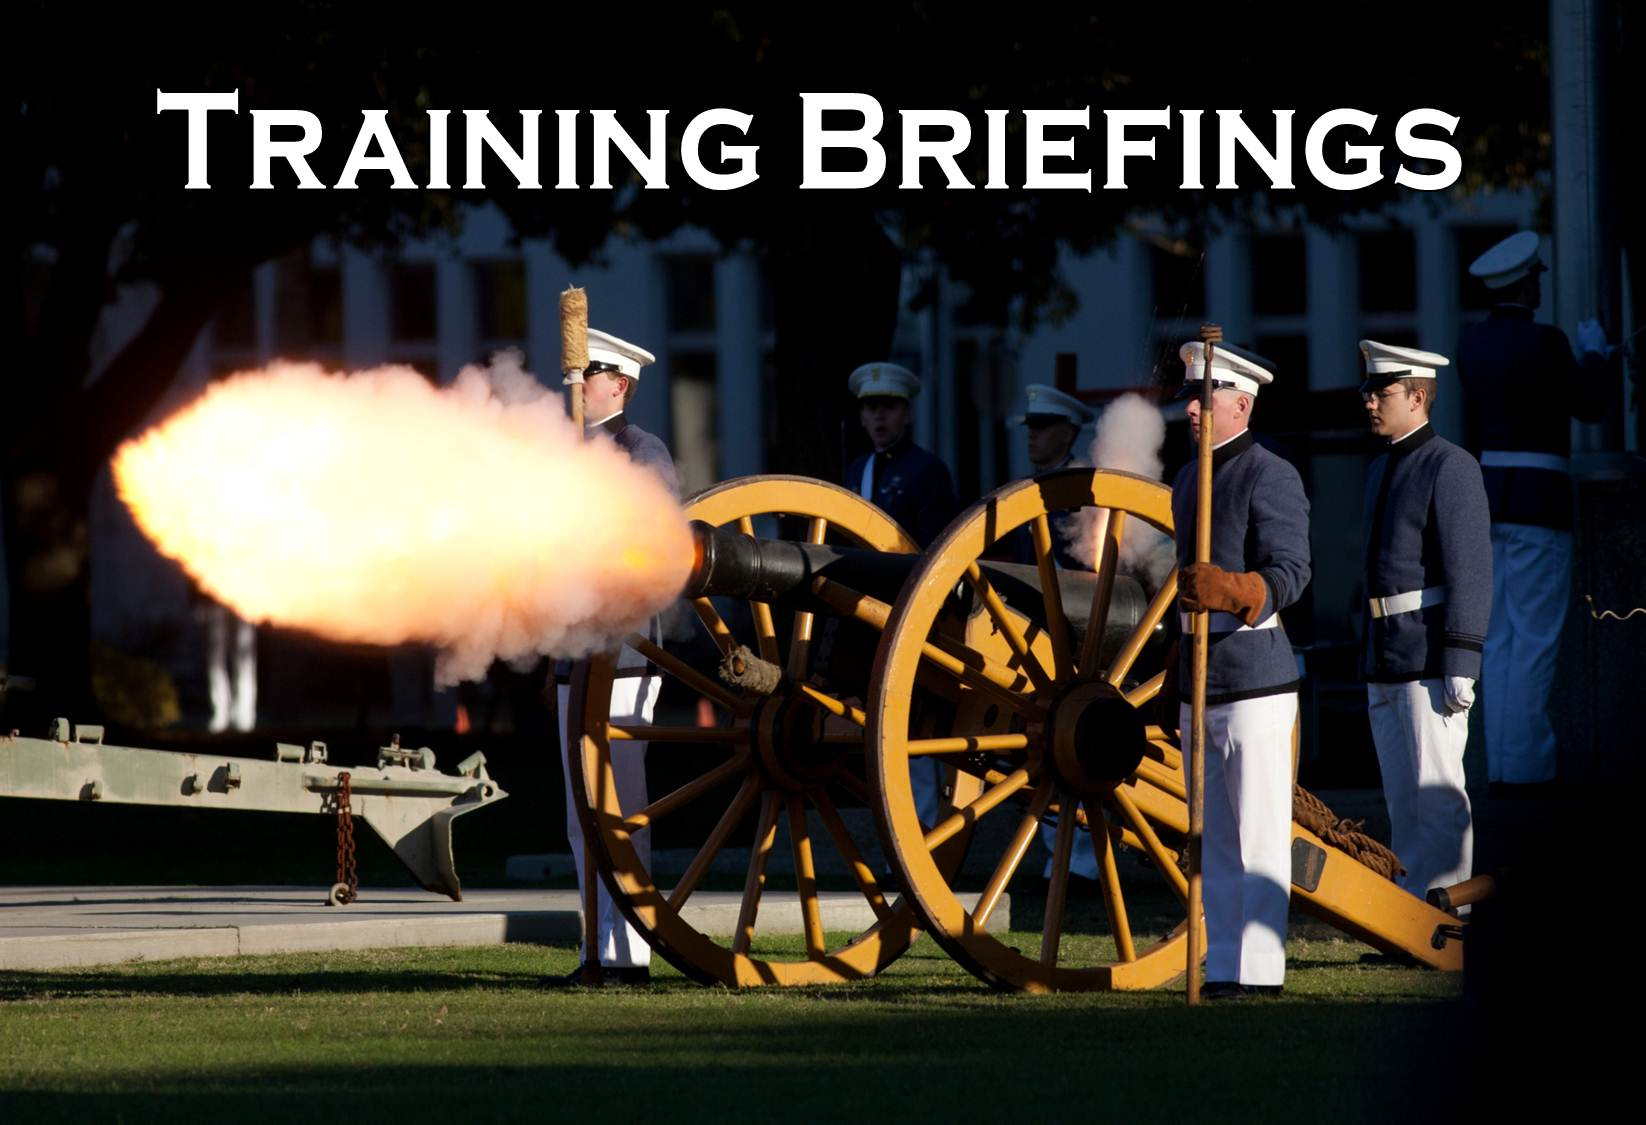 Training_Briefings_Pic